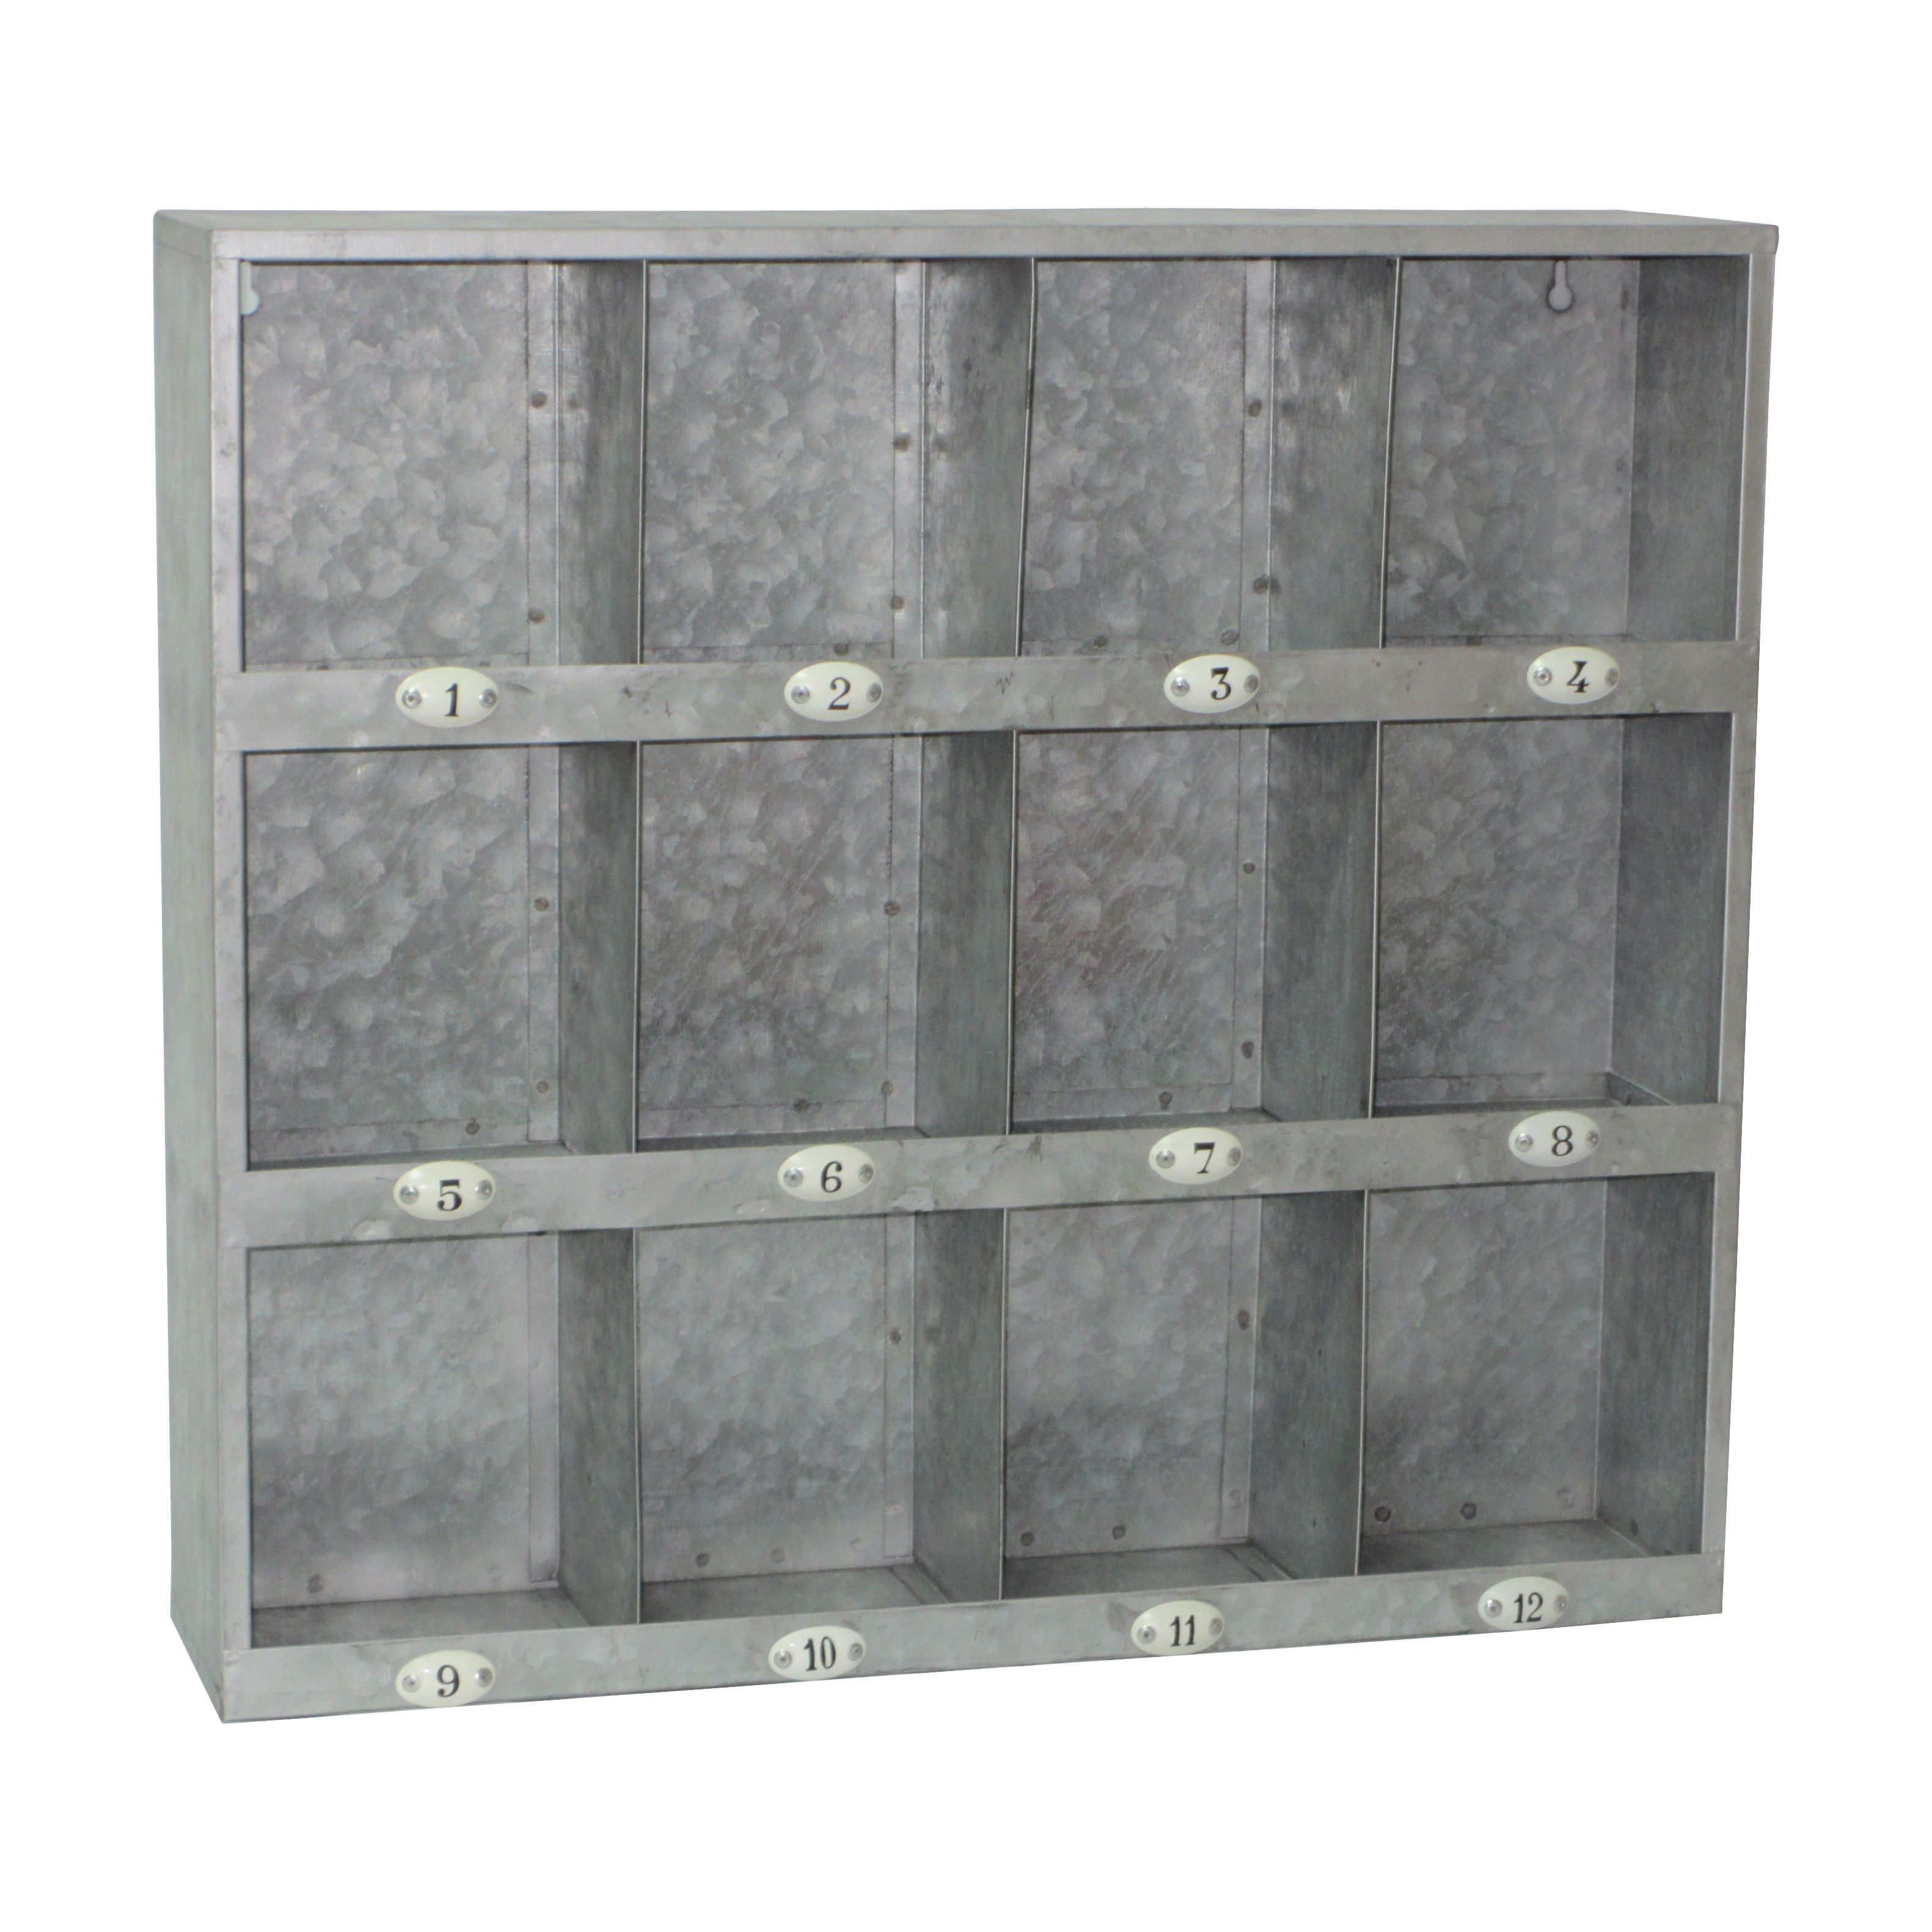 Cheungs Galvanized 12 Hole Wall Cubby With Images Wall Cubbies Galvanized Metal Wall Wall Cubby Storage